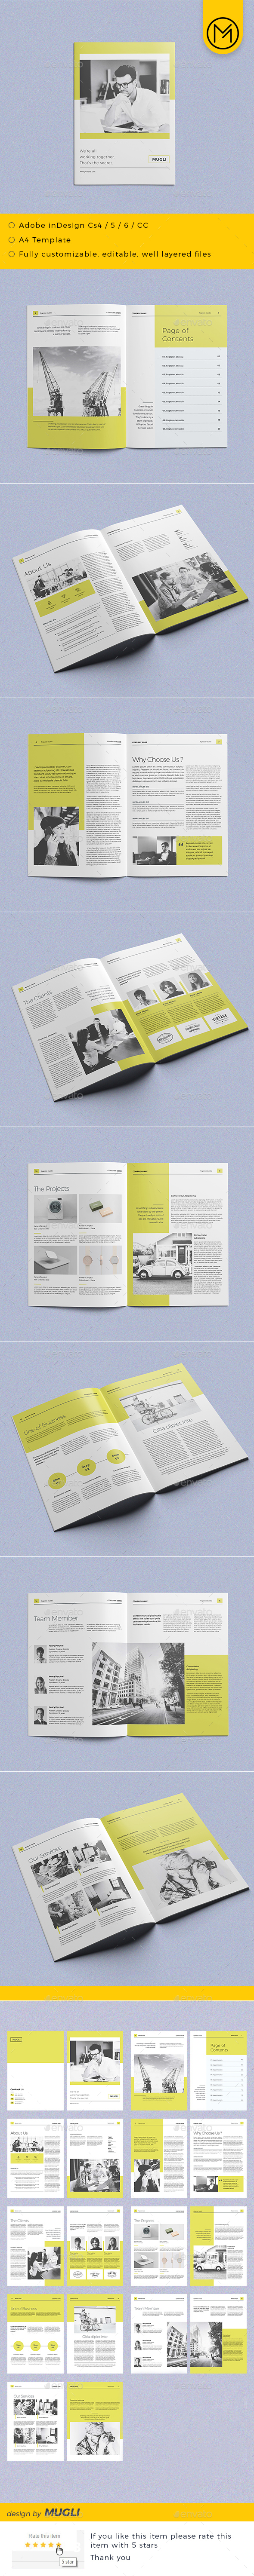 Simple & Clean Brochure - Corporate Brochures